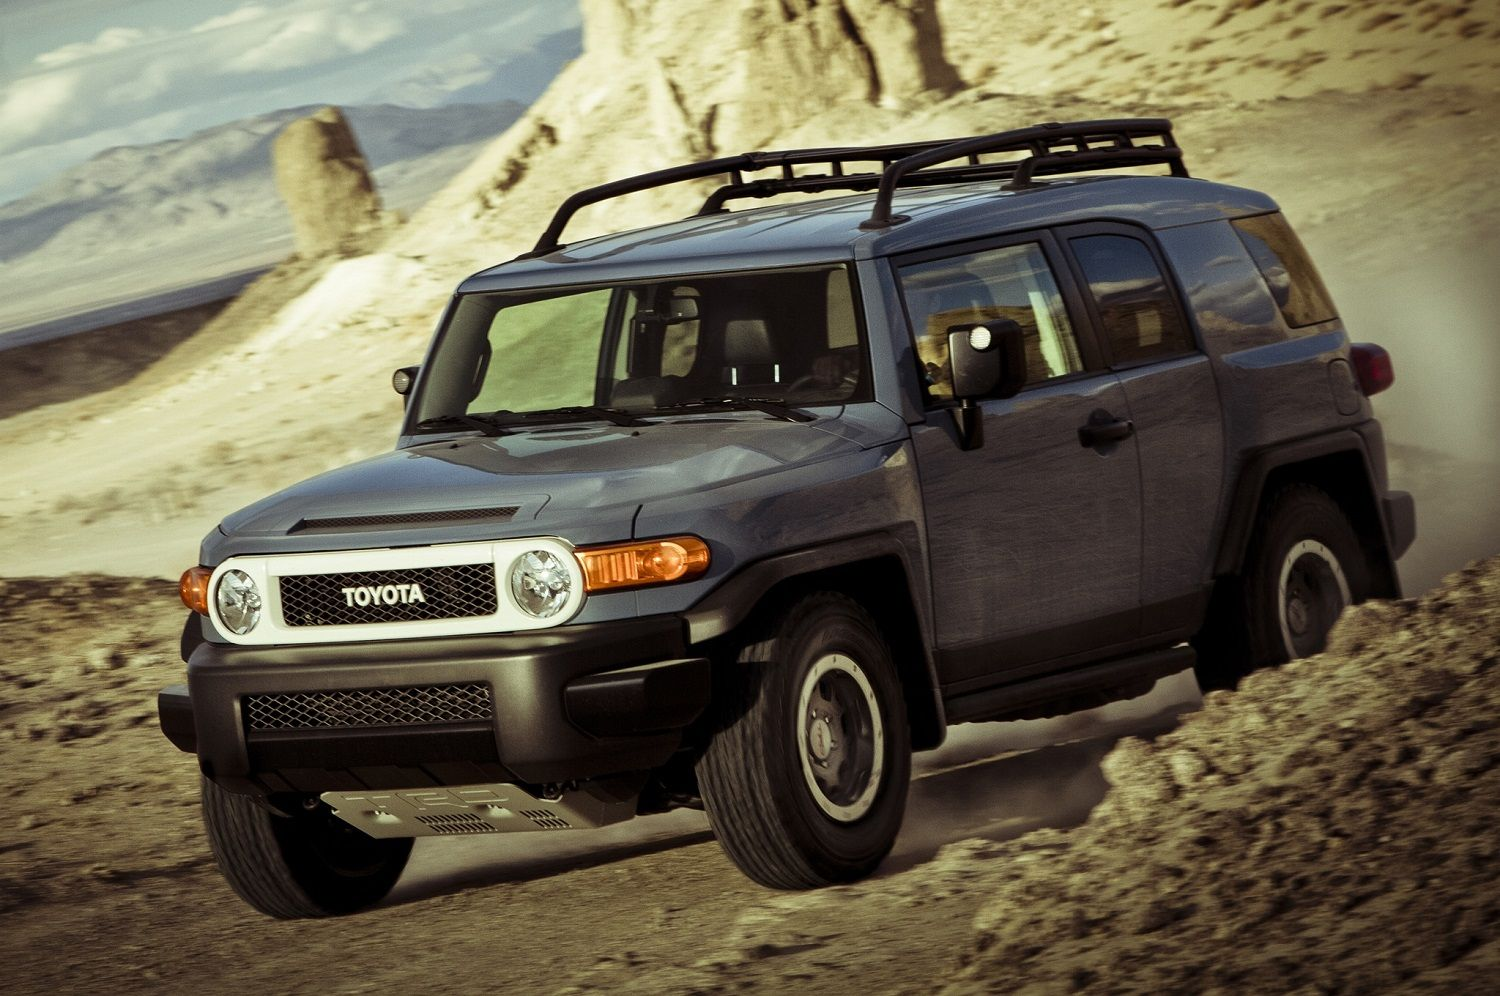 Used Toyota For Sale >> Toyota Fj Cruiser Suvs For Sale Get Great Prices On Toyota Fj